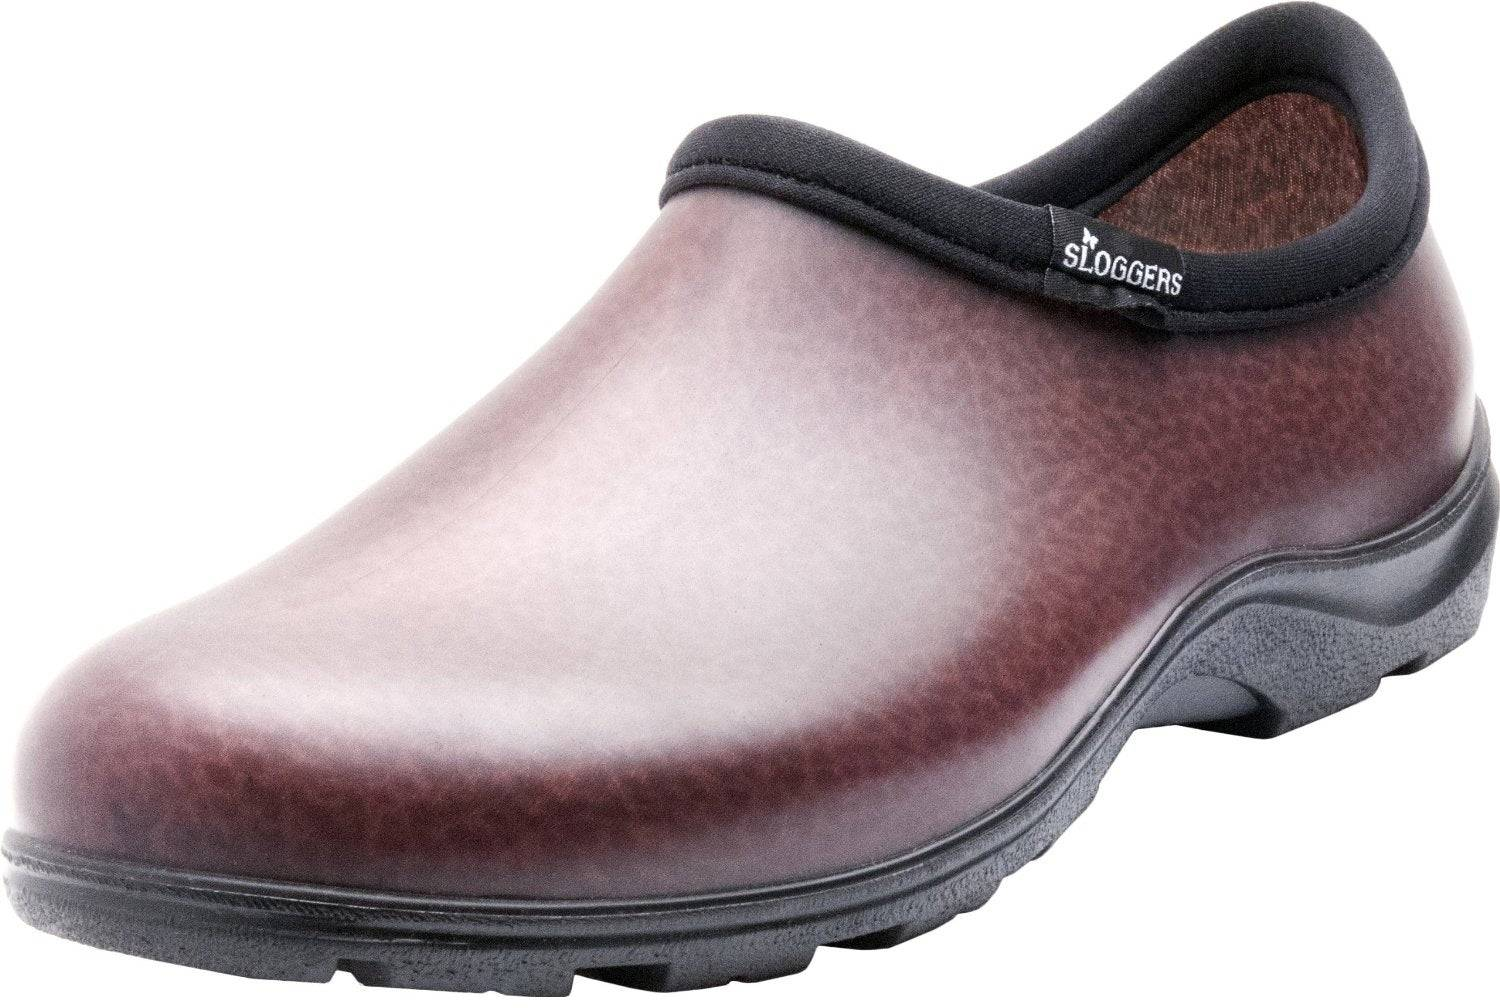 Sloggers 5301bn10 Men's Rain And Garden Shoes, Size 10, Brown